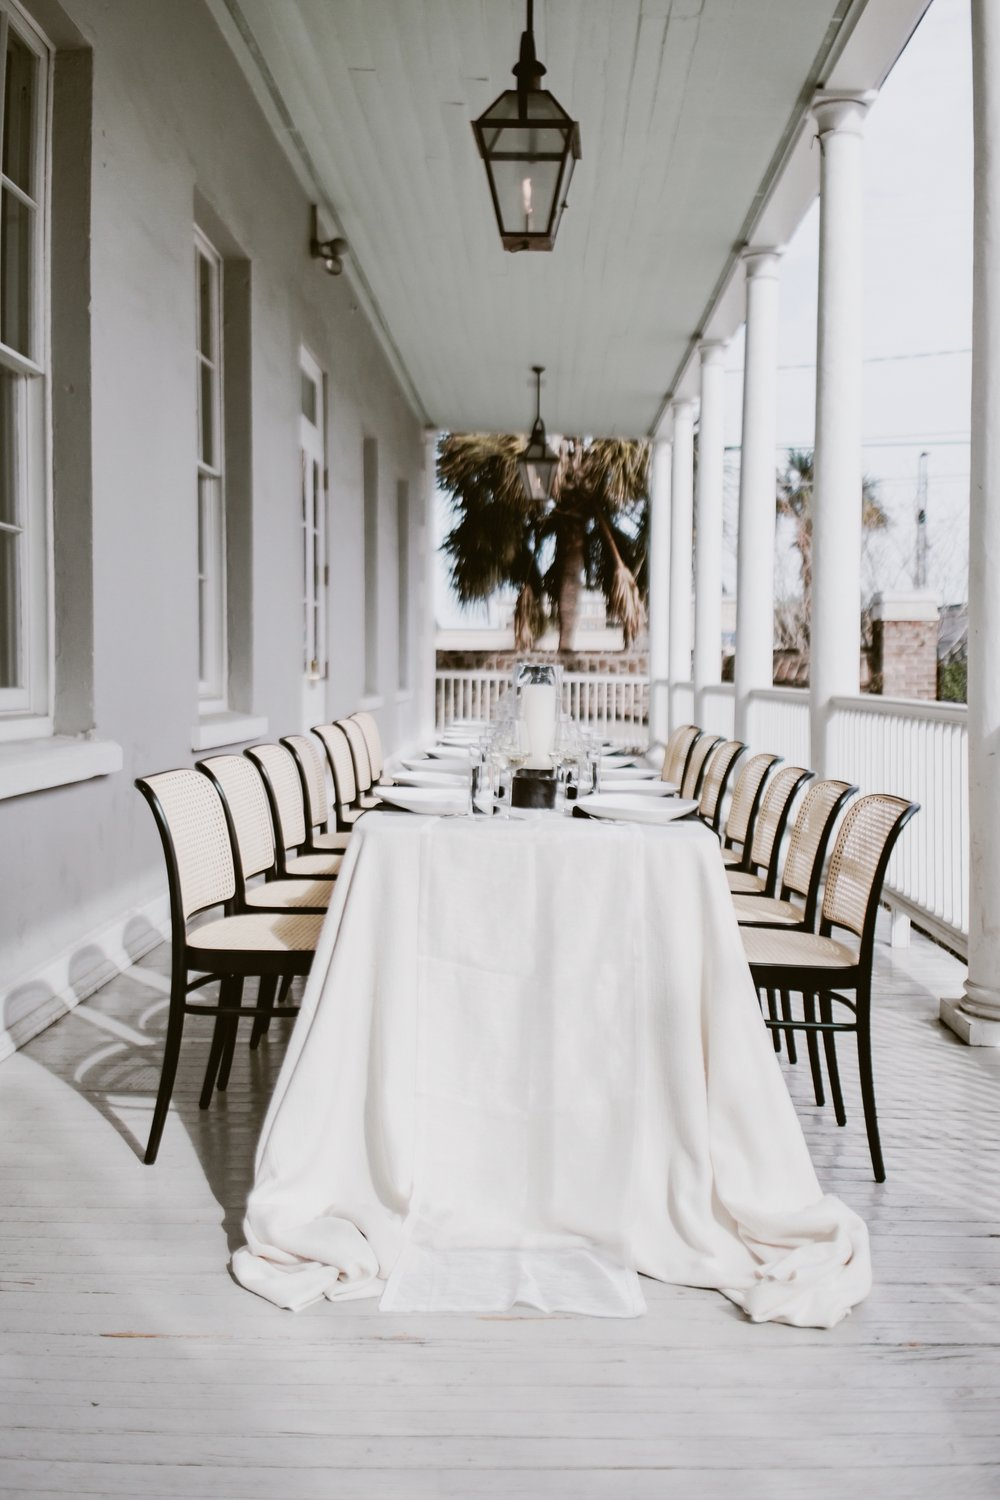 12th-Table-NASHVILLE-EVENT-RENTALS-Party-Rentals-Chairs-Dining-Tables-CORPORATE-EVENTS-Dinner-Party-GADSDEN-HOUSE-Charleston (2).jpg